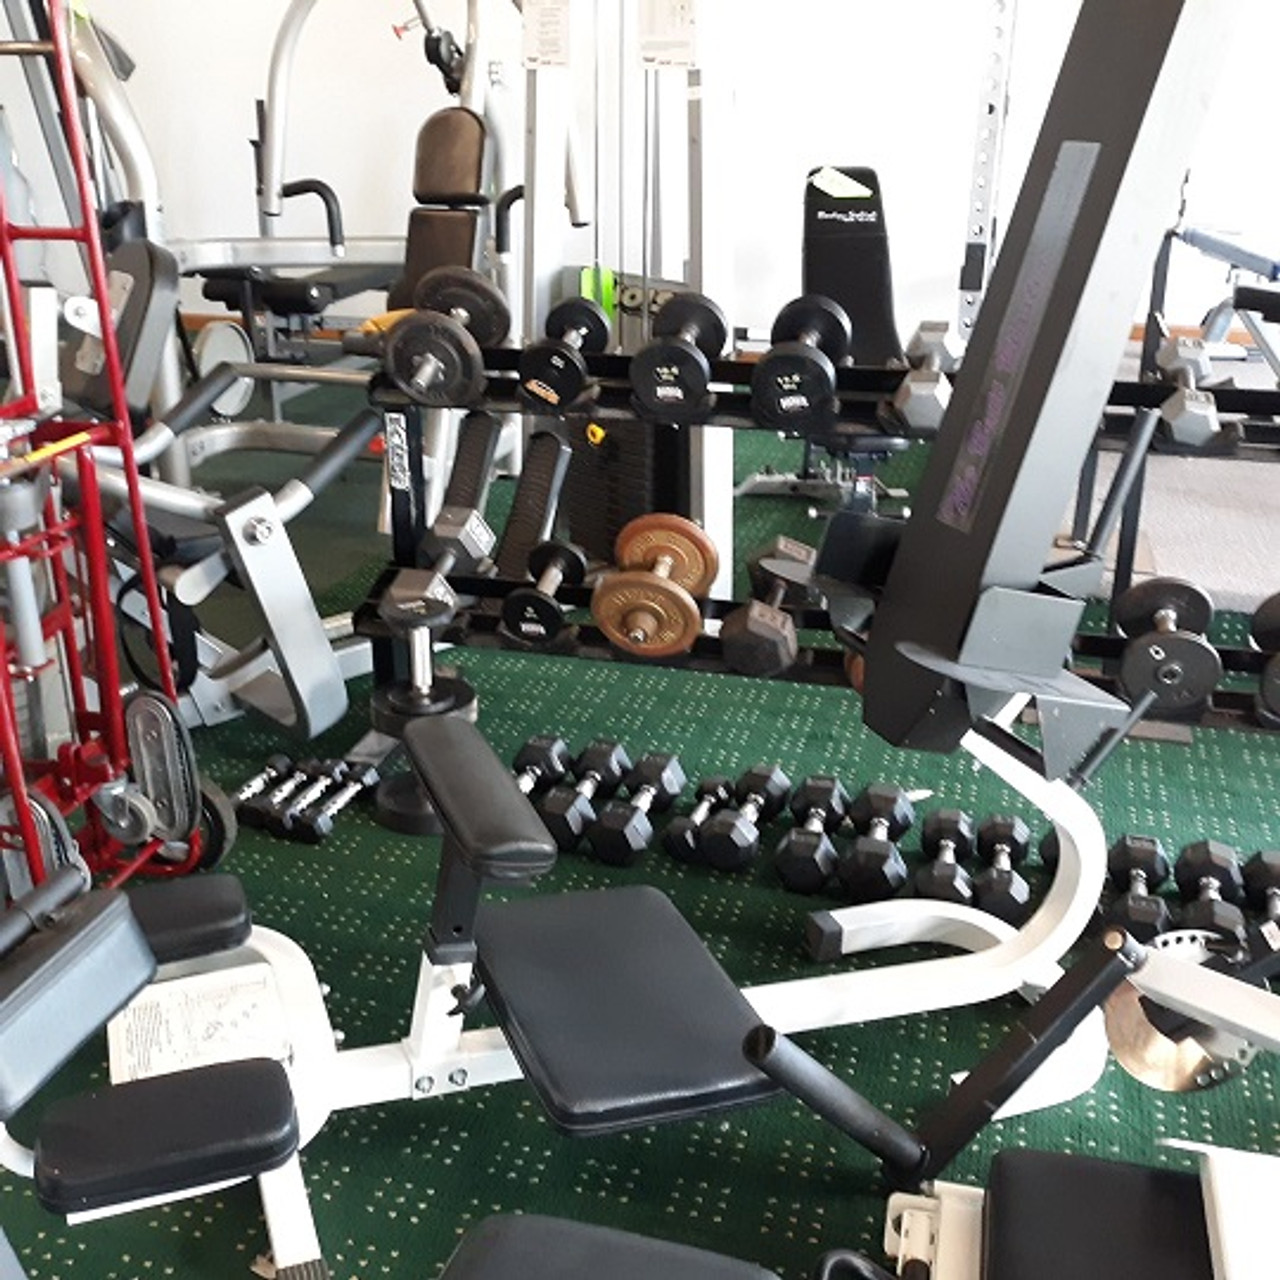 2f4ca50b500d3 The ButtBlaster Glute machine for sale at Big Fitness